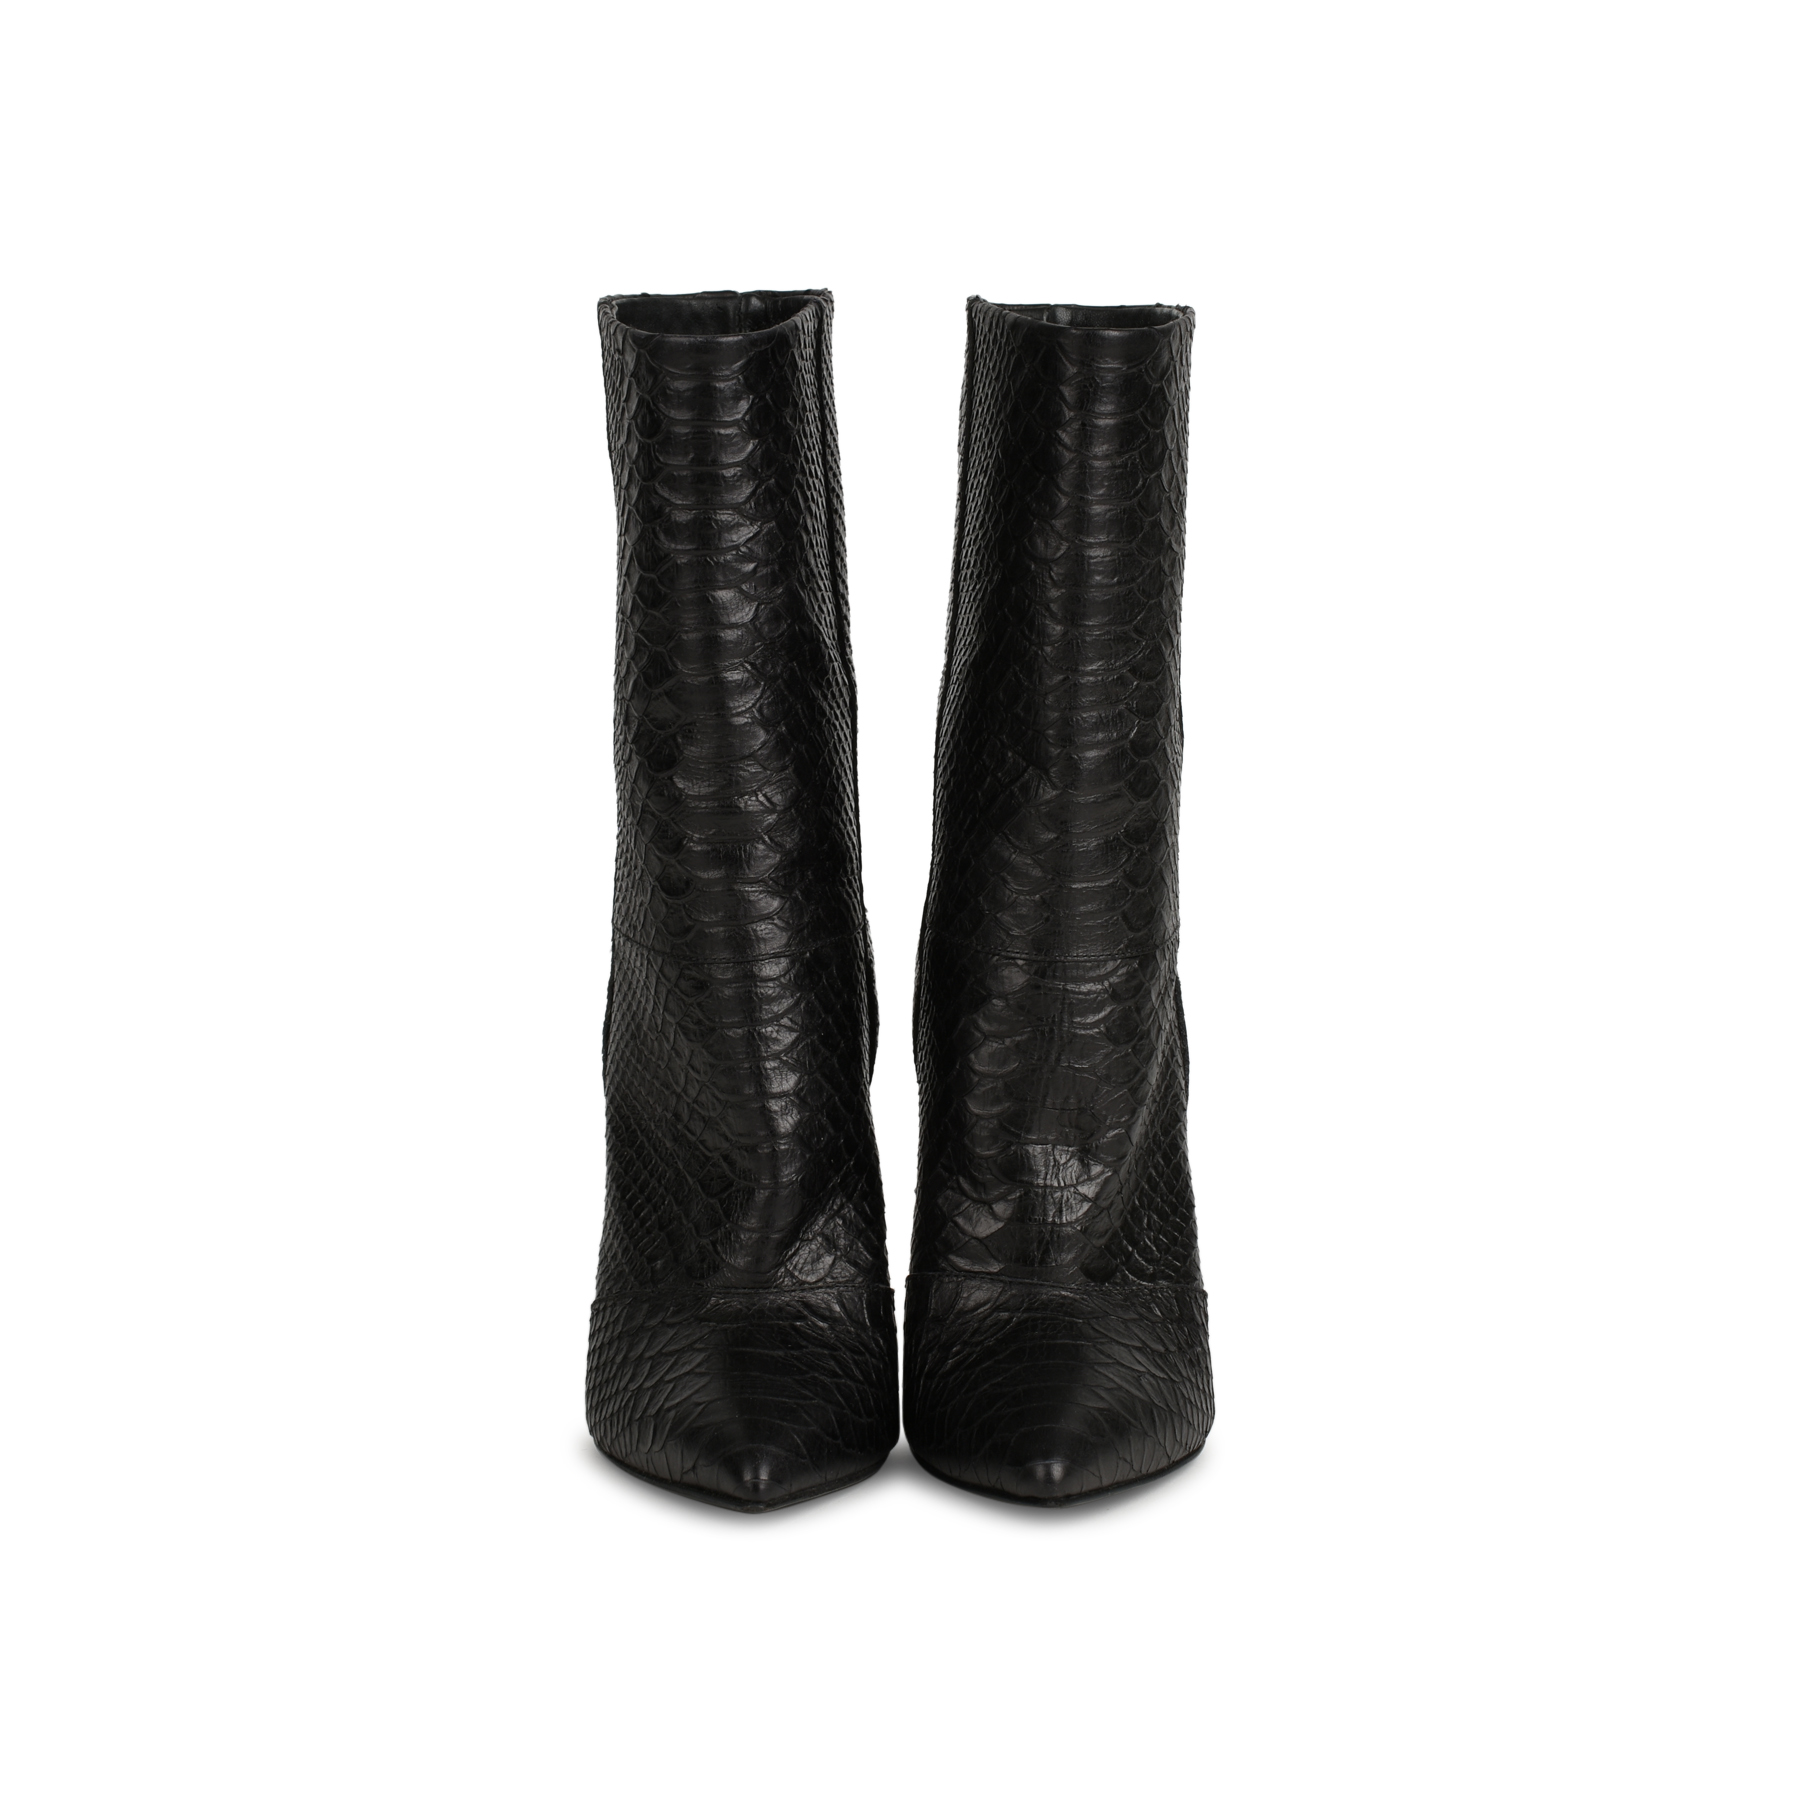 Authentic Pre Owned Giuseppe Zanotti Python Wedge Boots (PSS-441-00019)  1d613521b551